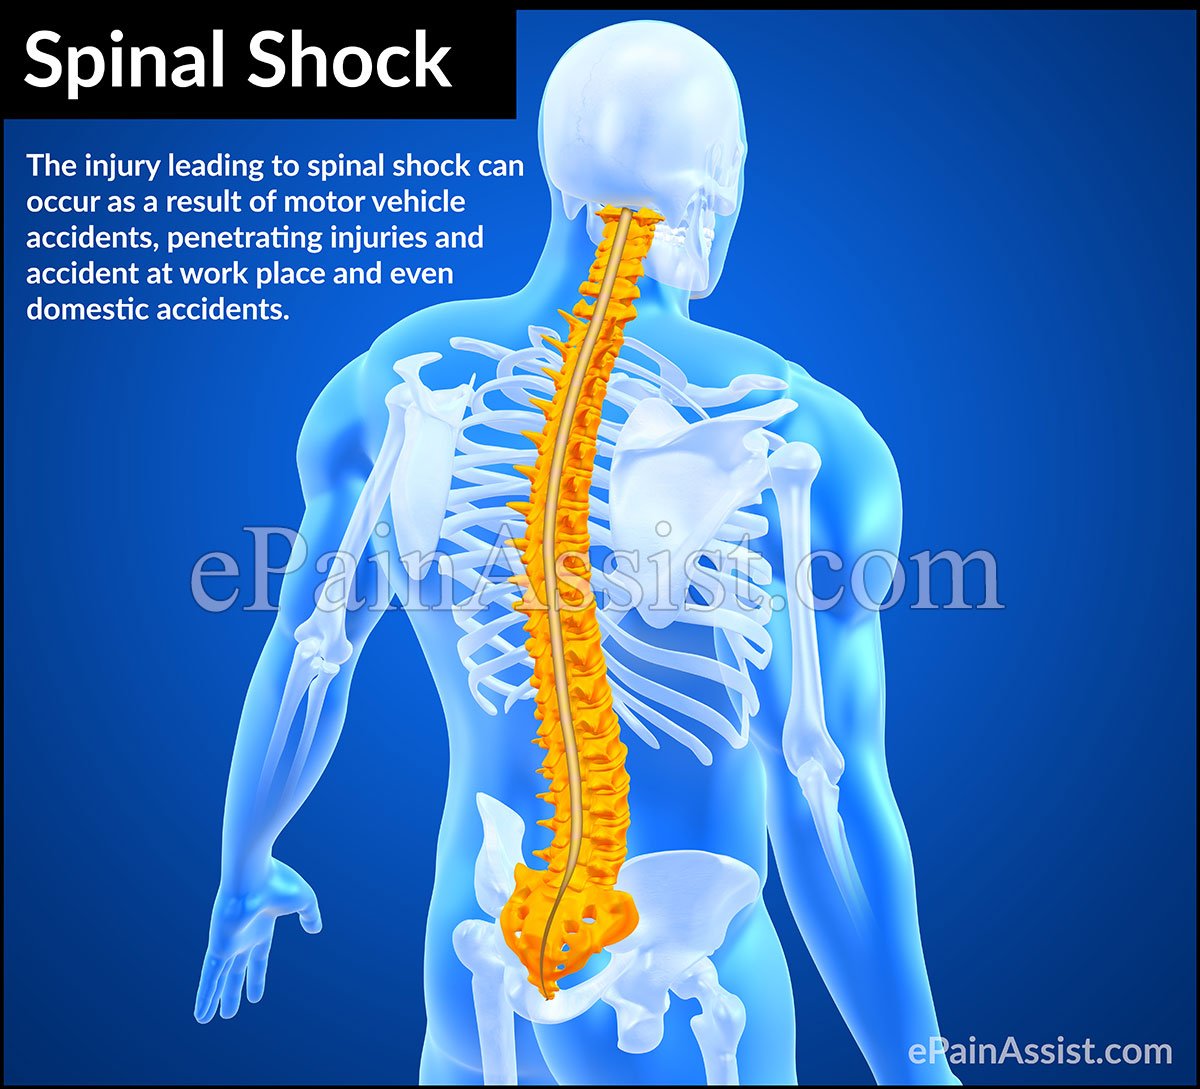 What is Spinal Shock?